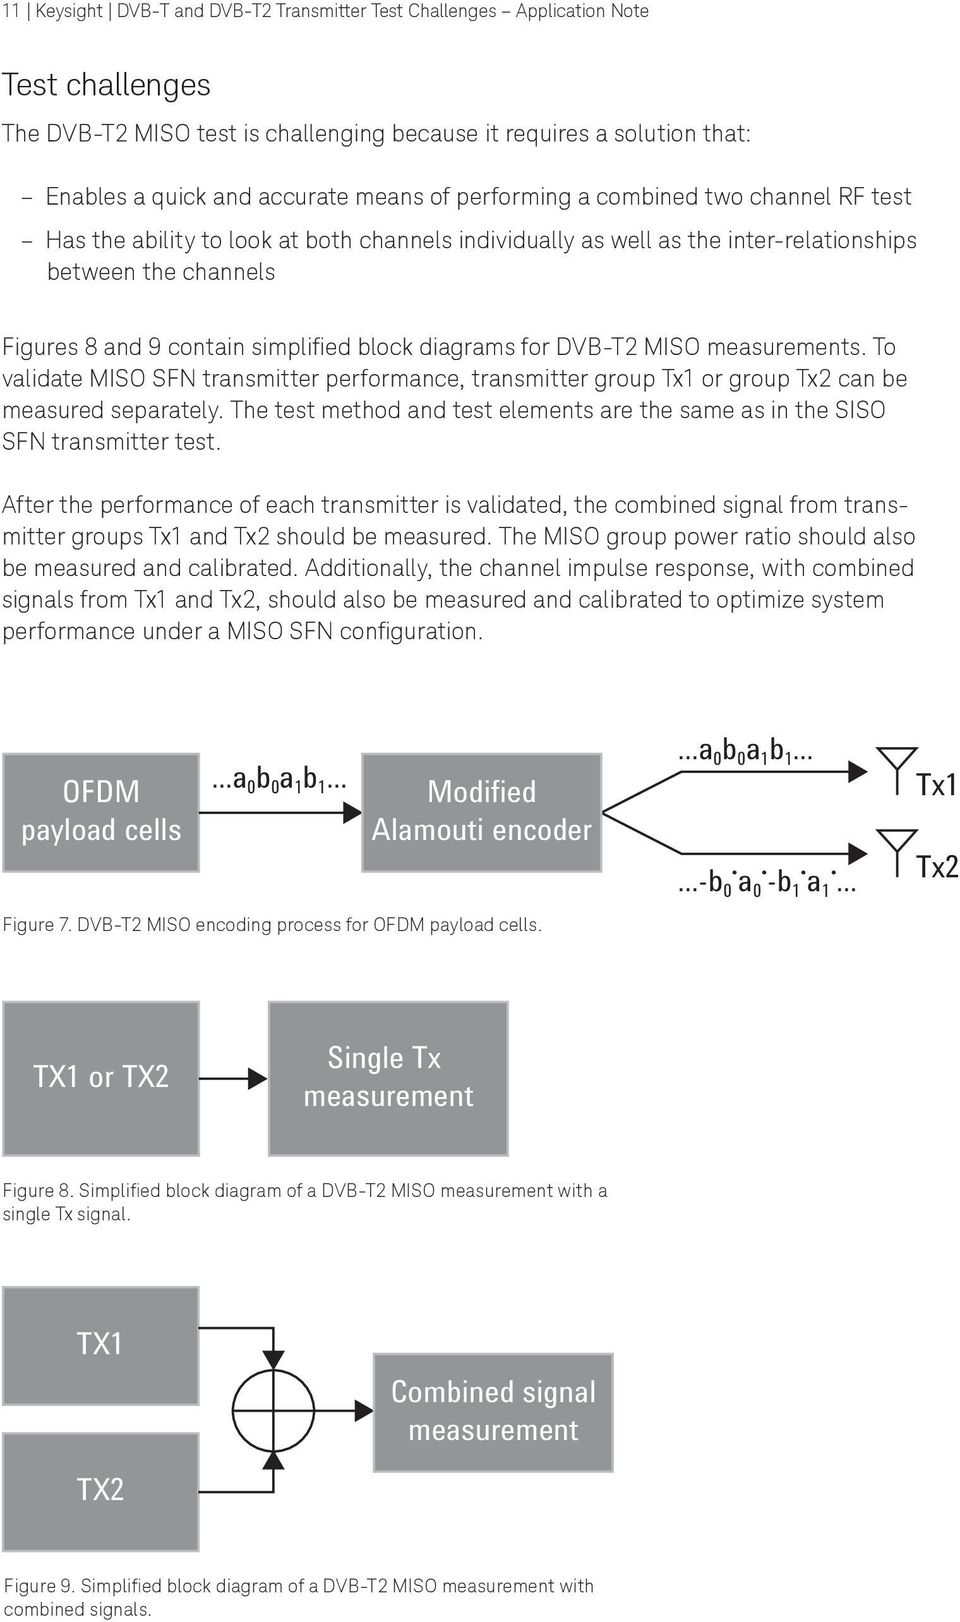 Keysight Technologies Dvb T And T2 Transmitter Test Challenges Rf Systems Block Diagram Diagrams For Miso Measurements To Validate Sfn Performance